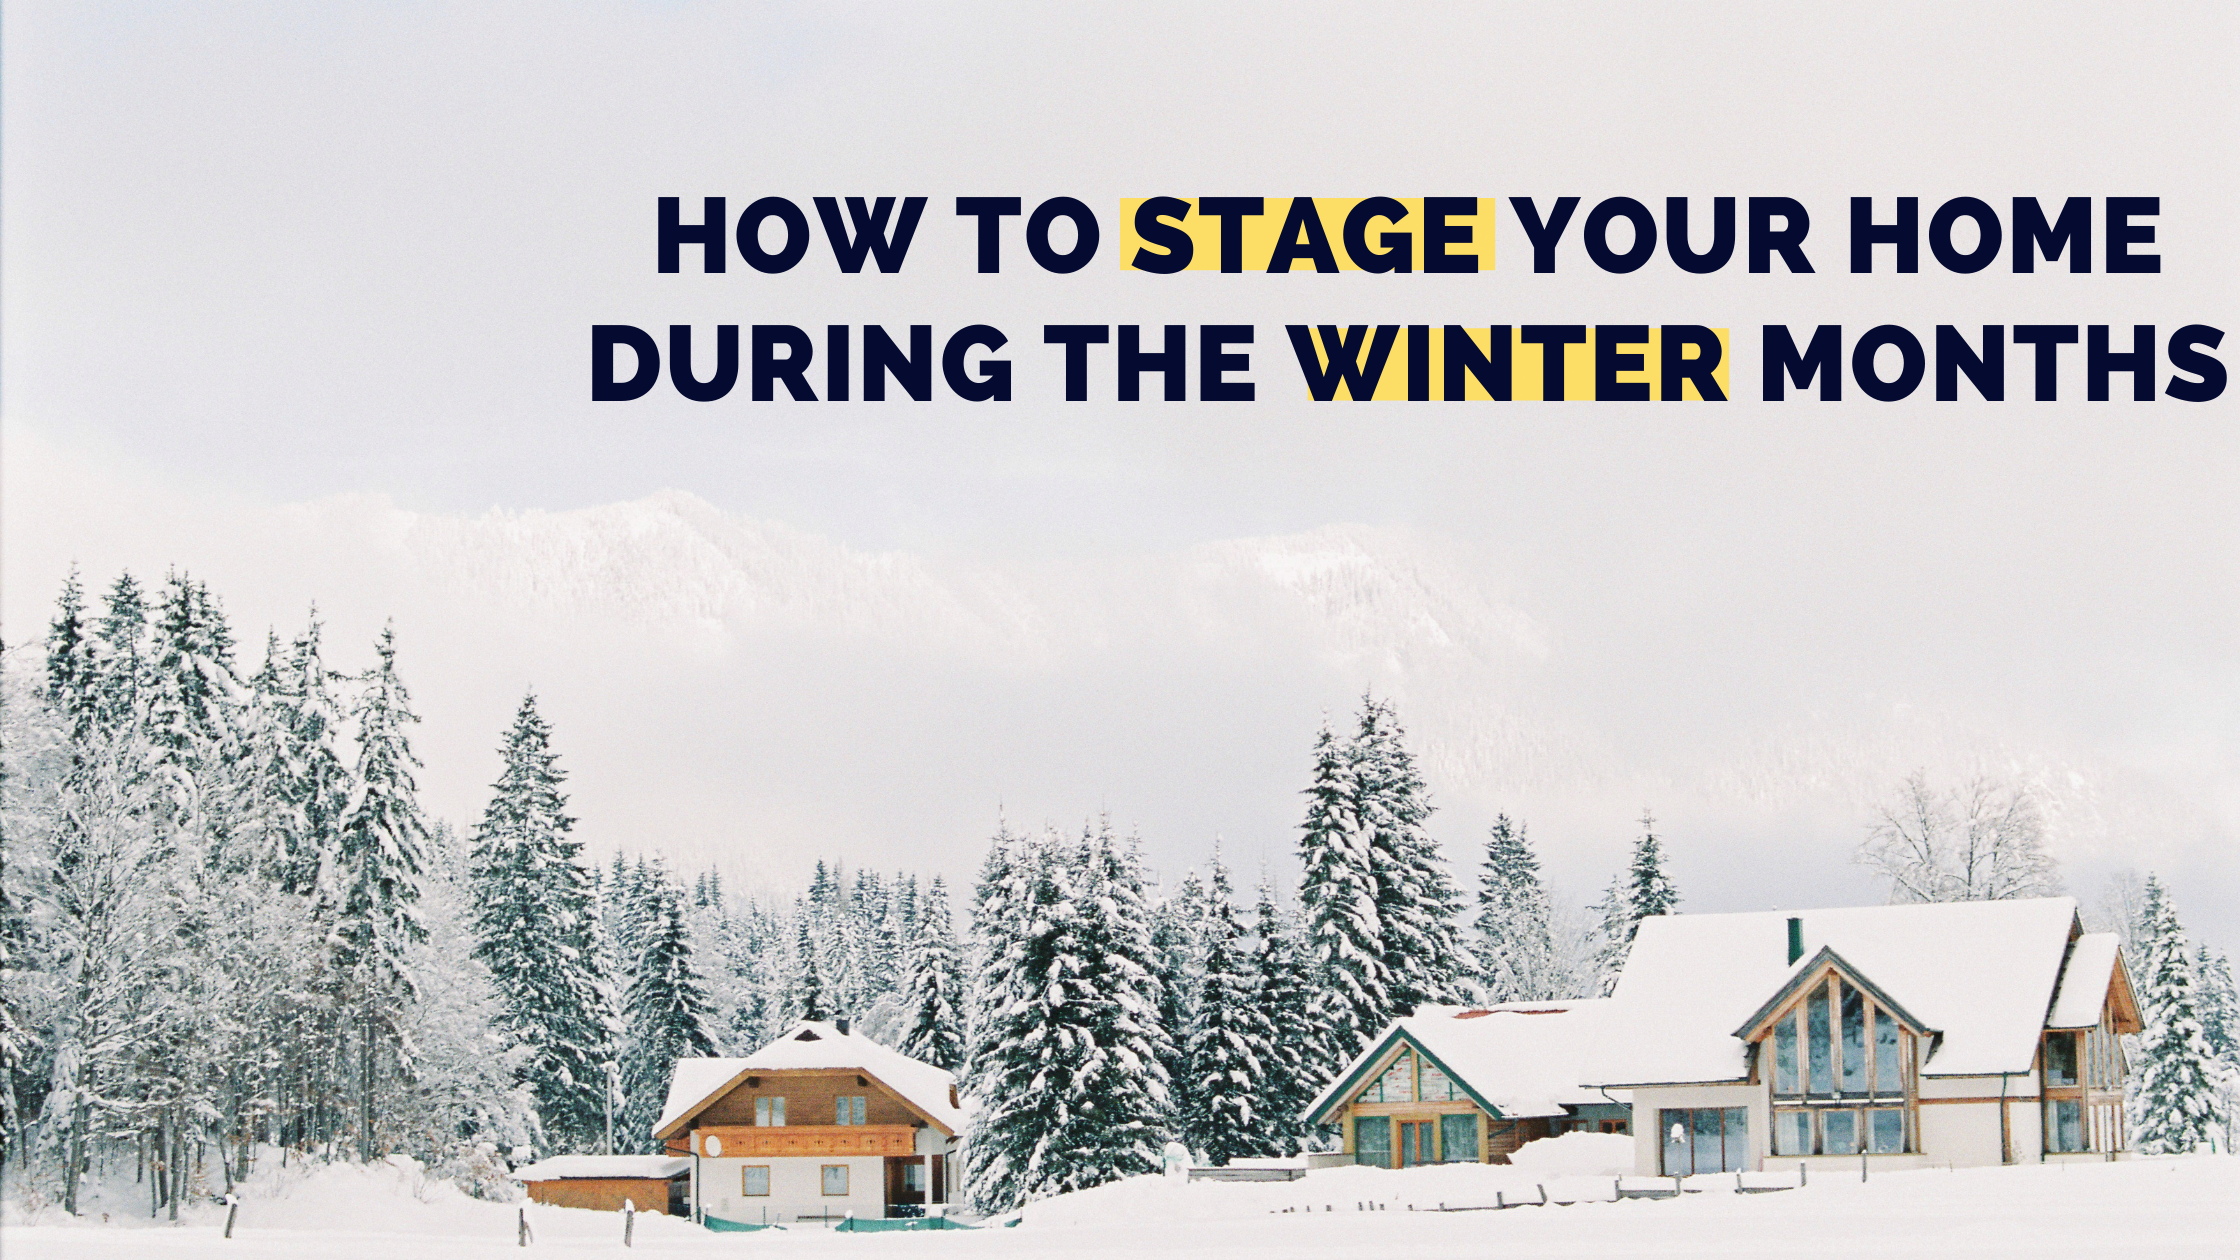 How to Stage Your Home During the Winter Months